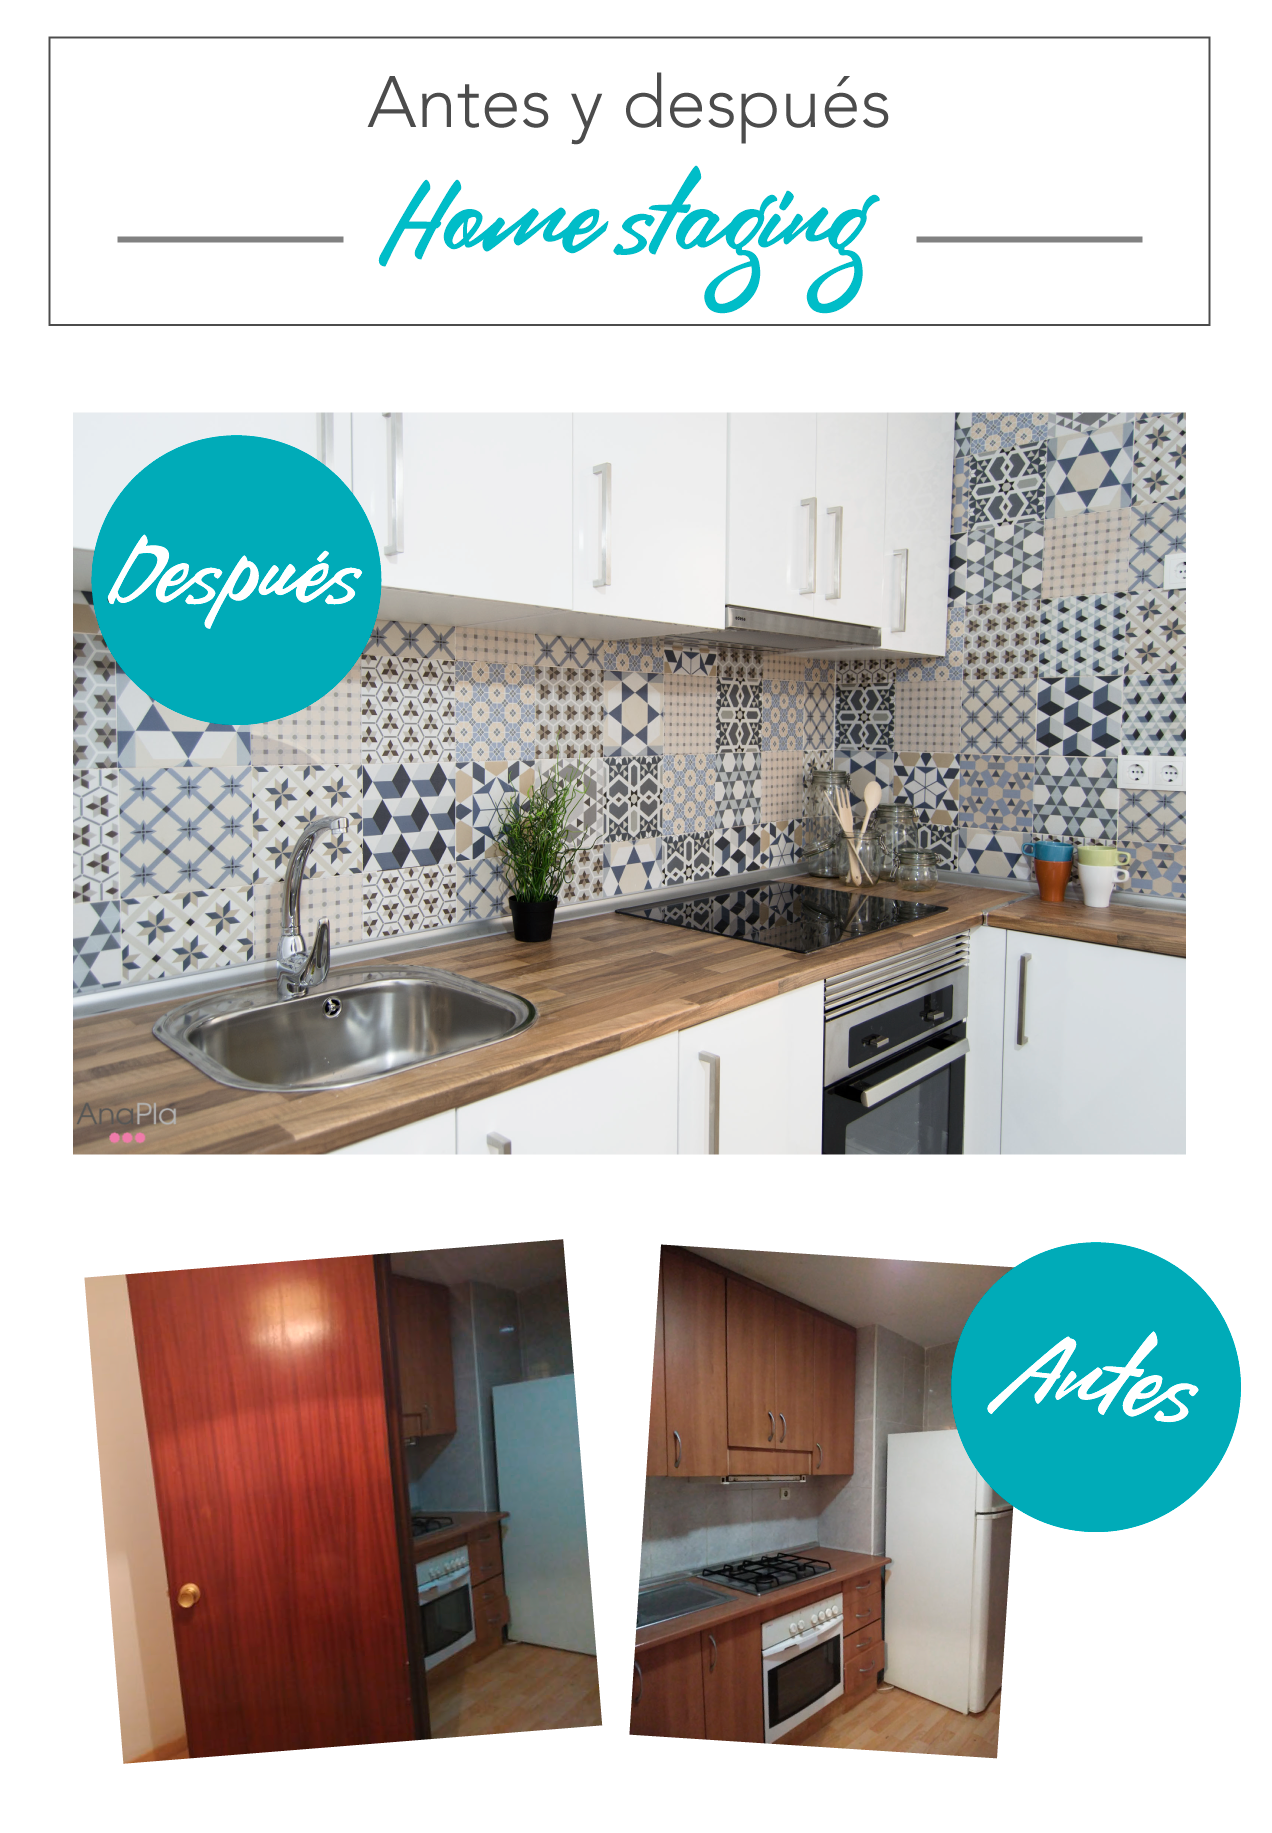 home-staging-ana-pla-interiorismo-decoracion-portada